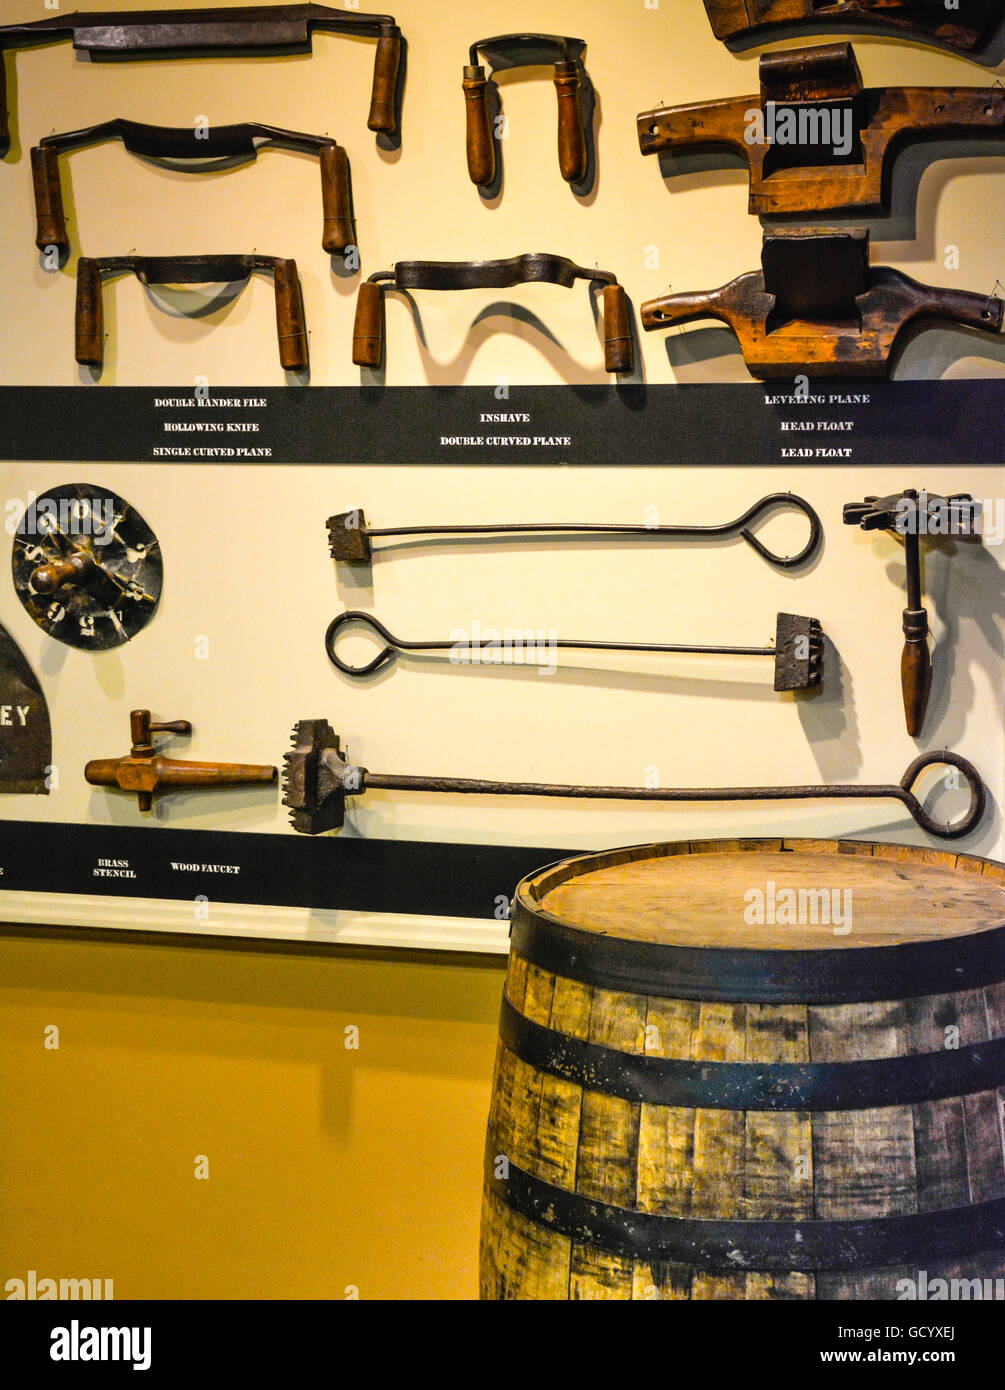 Exhibition of whiskey making tools on display with an oak barrel during tour of the Jack Daniel's Distillery - Stock Image